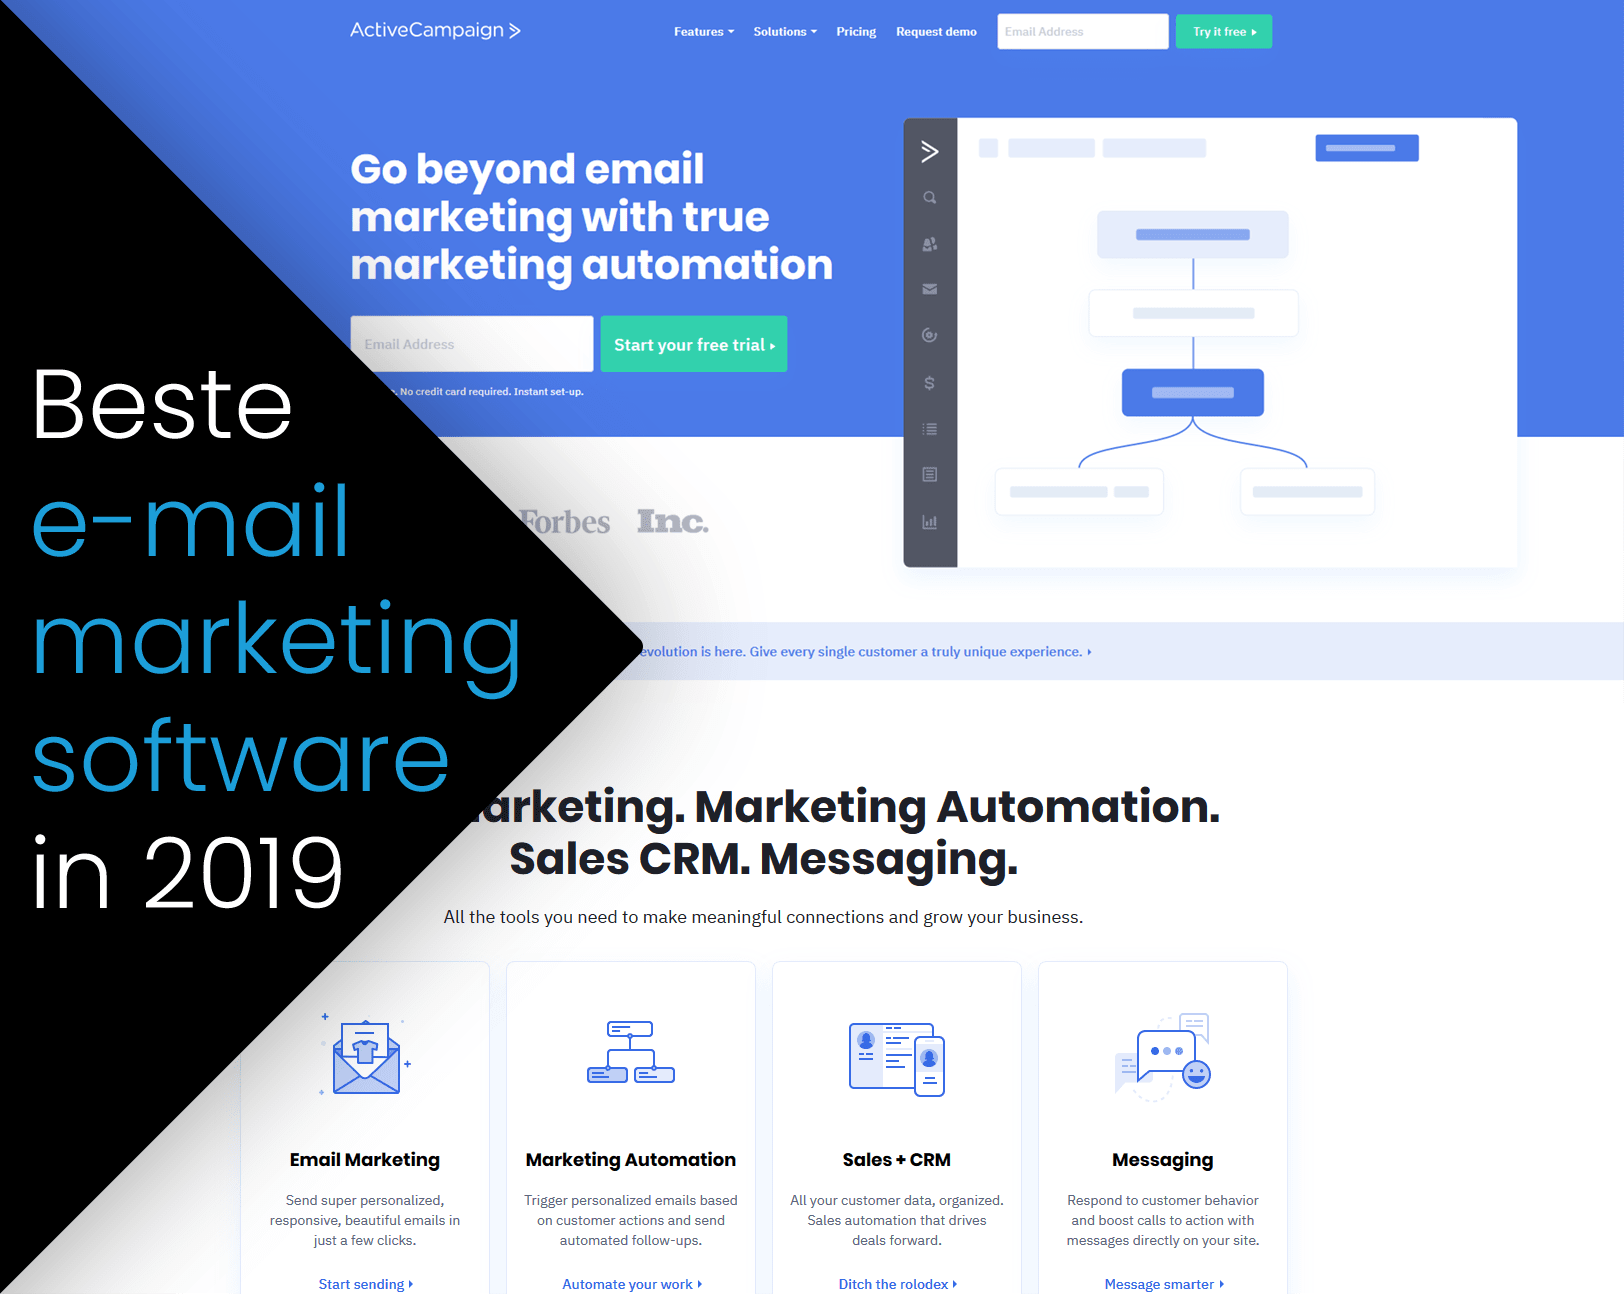 De beste e-mail marketing software in 2019